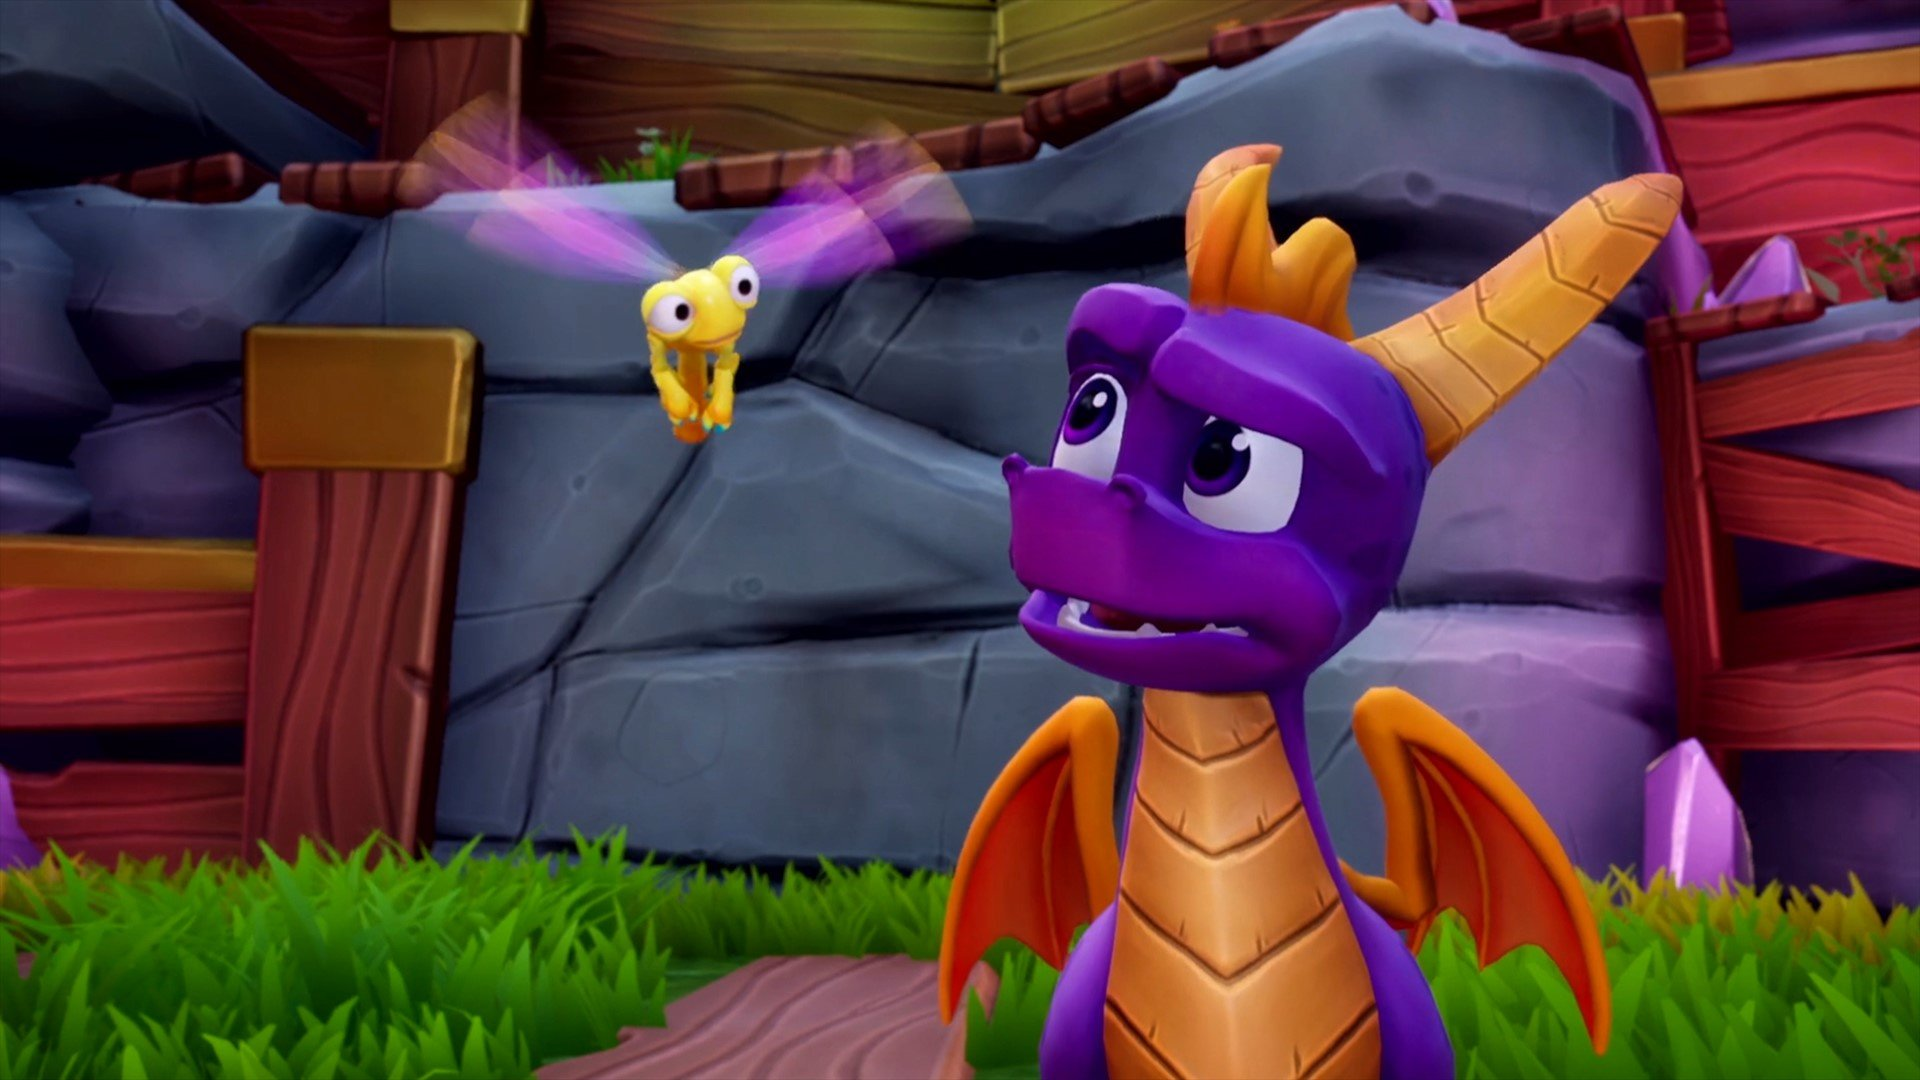 Activision thinks that subtitles aren't a necessity for Spyro Reignited Trilogy